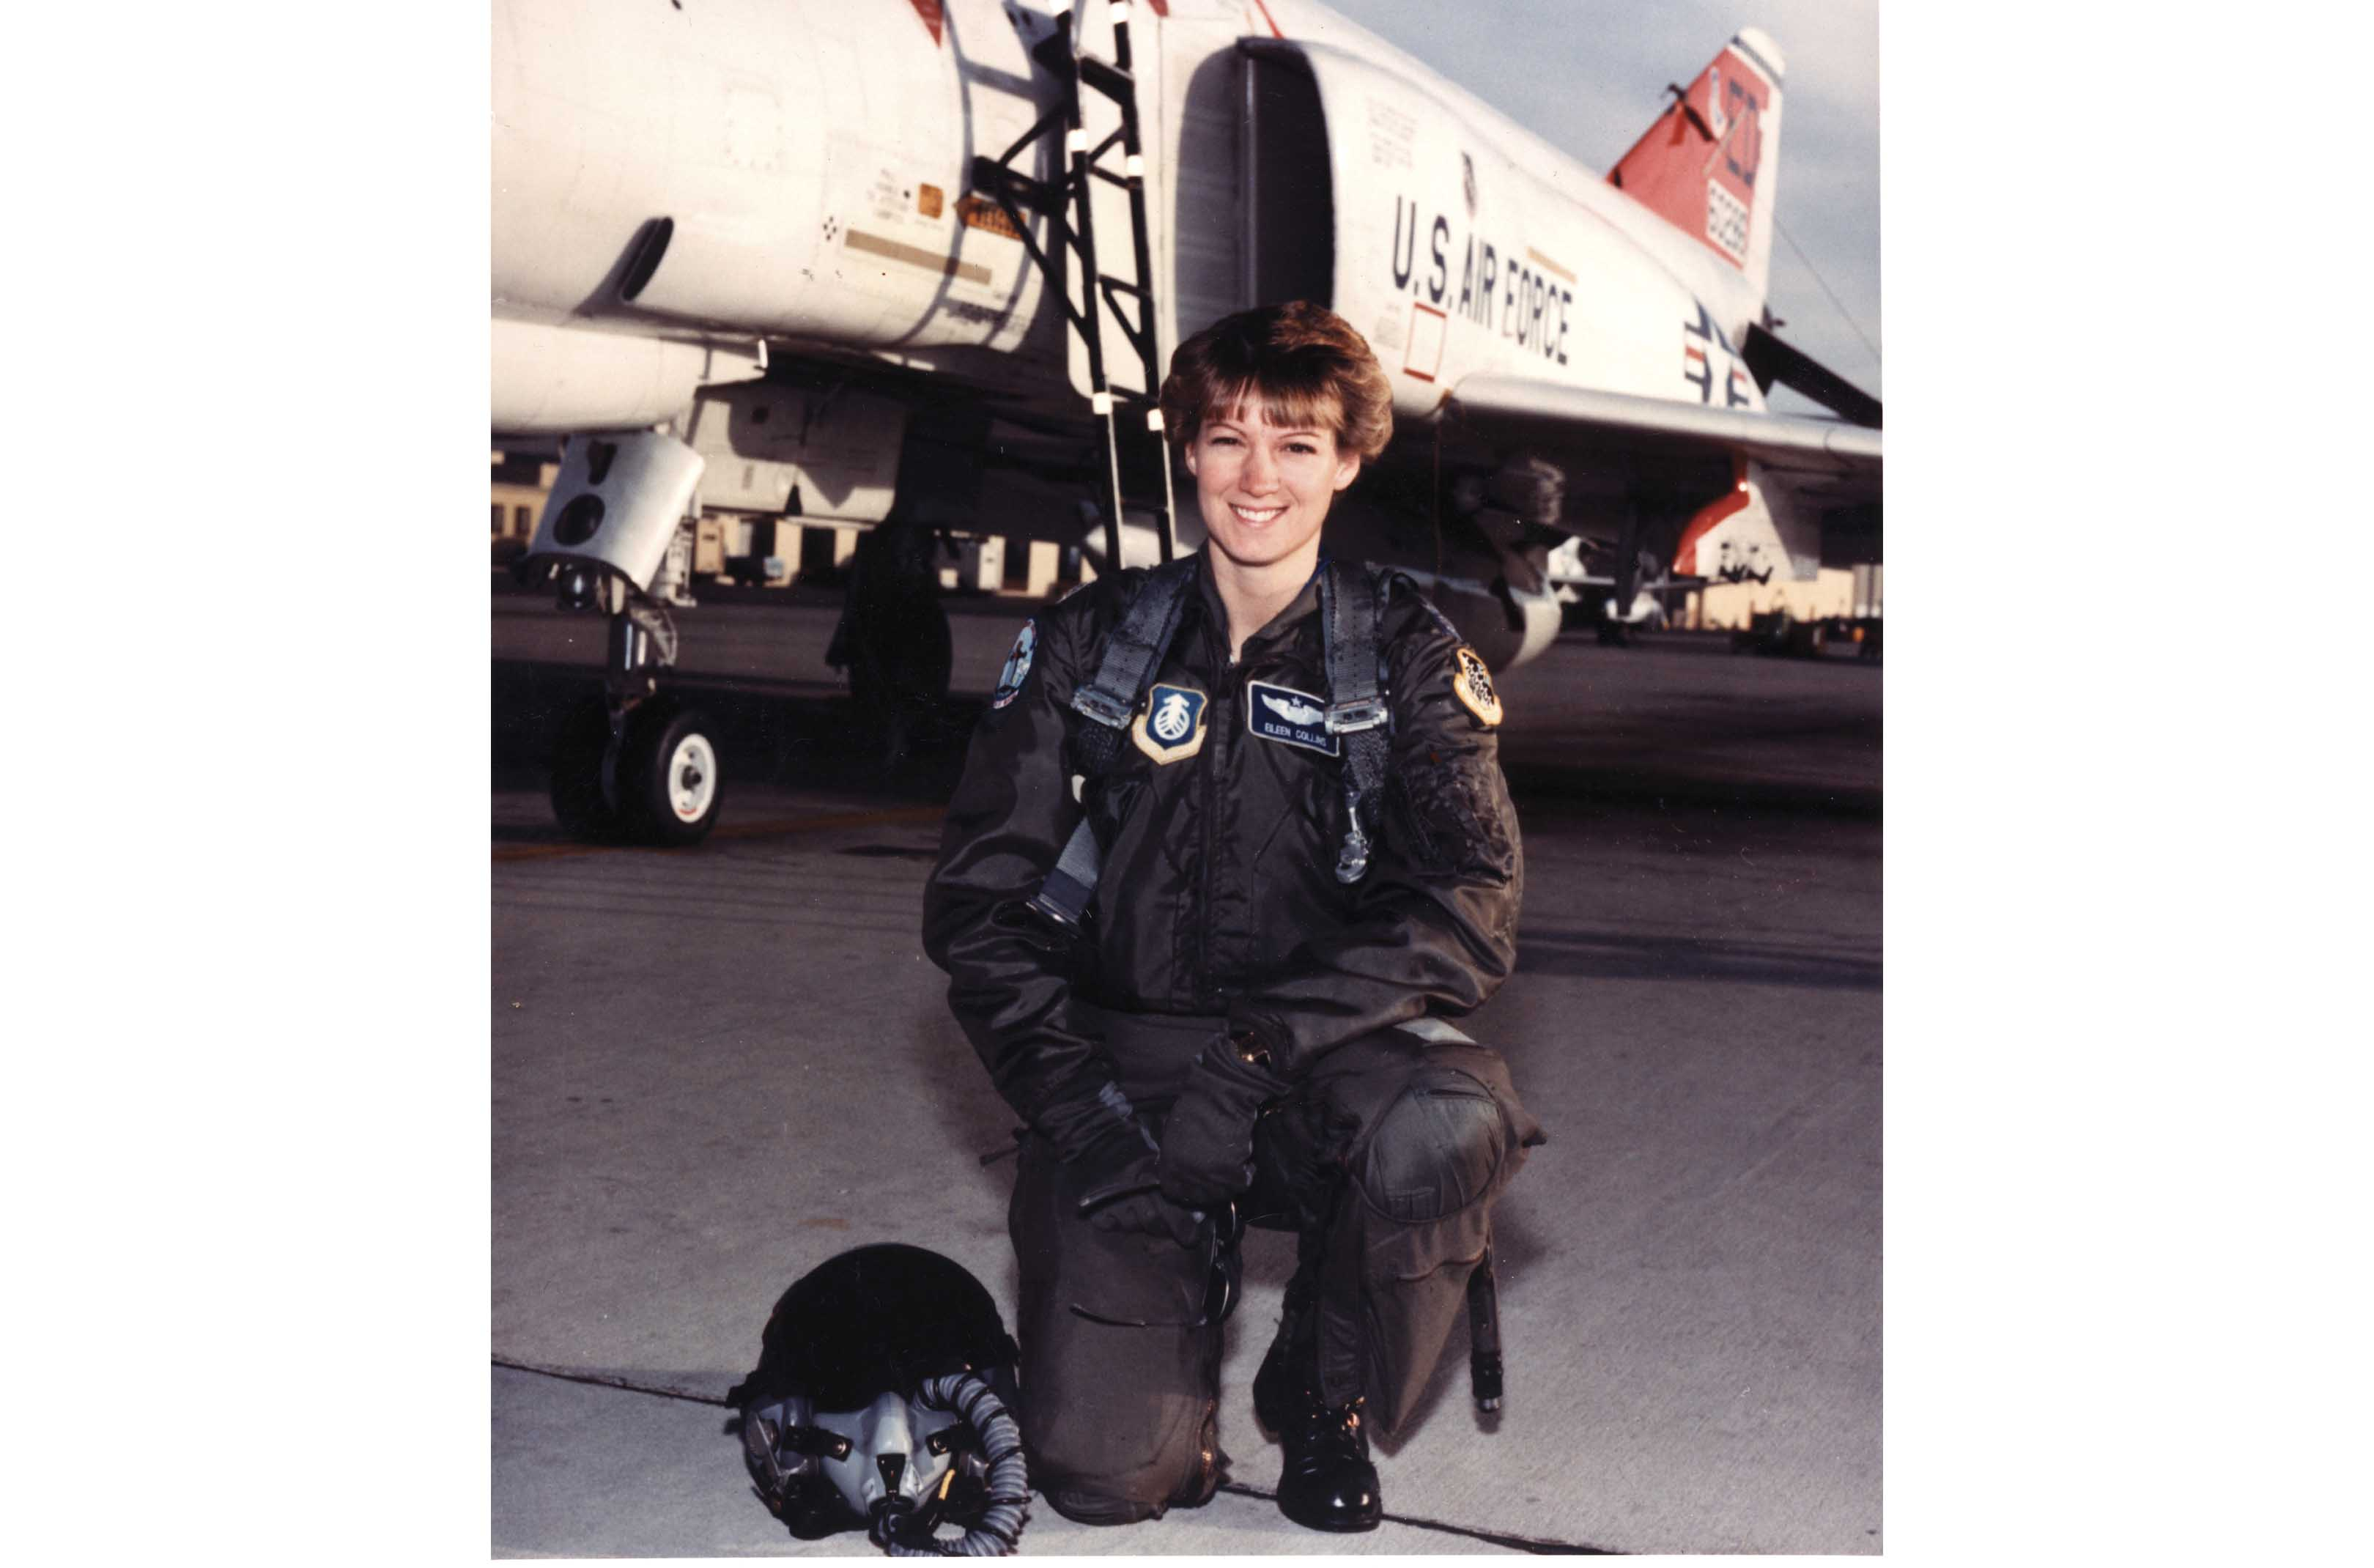 Collins at the Air Force Test pilot school at Edwards Air Force Base, CA, 1989.